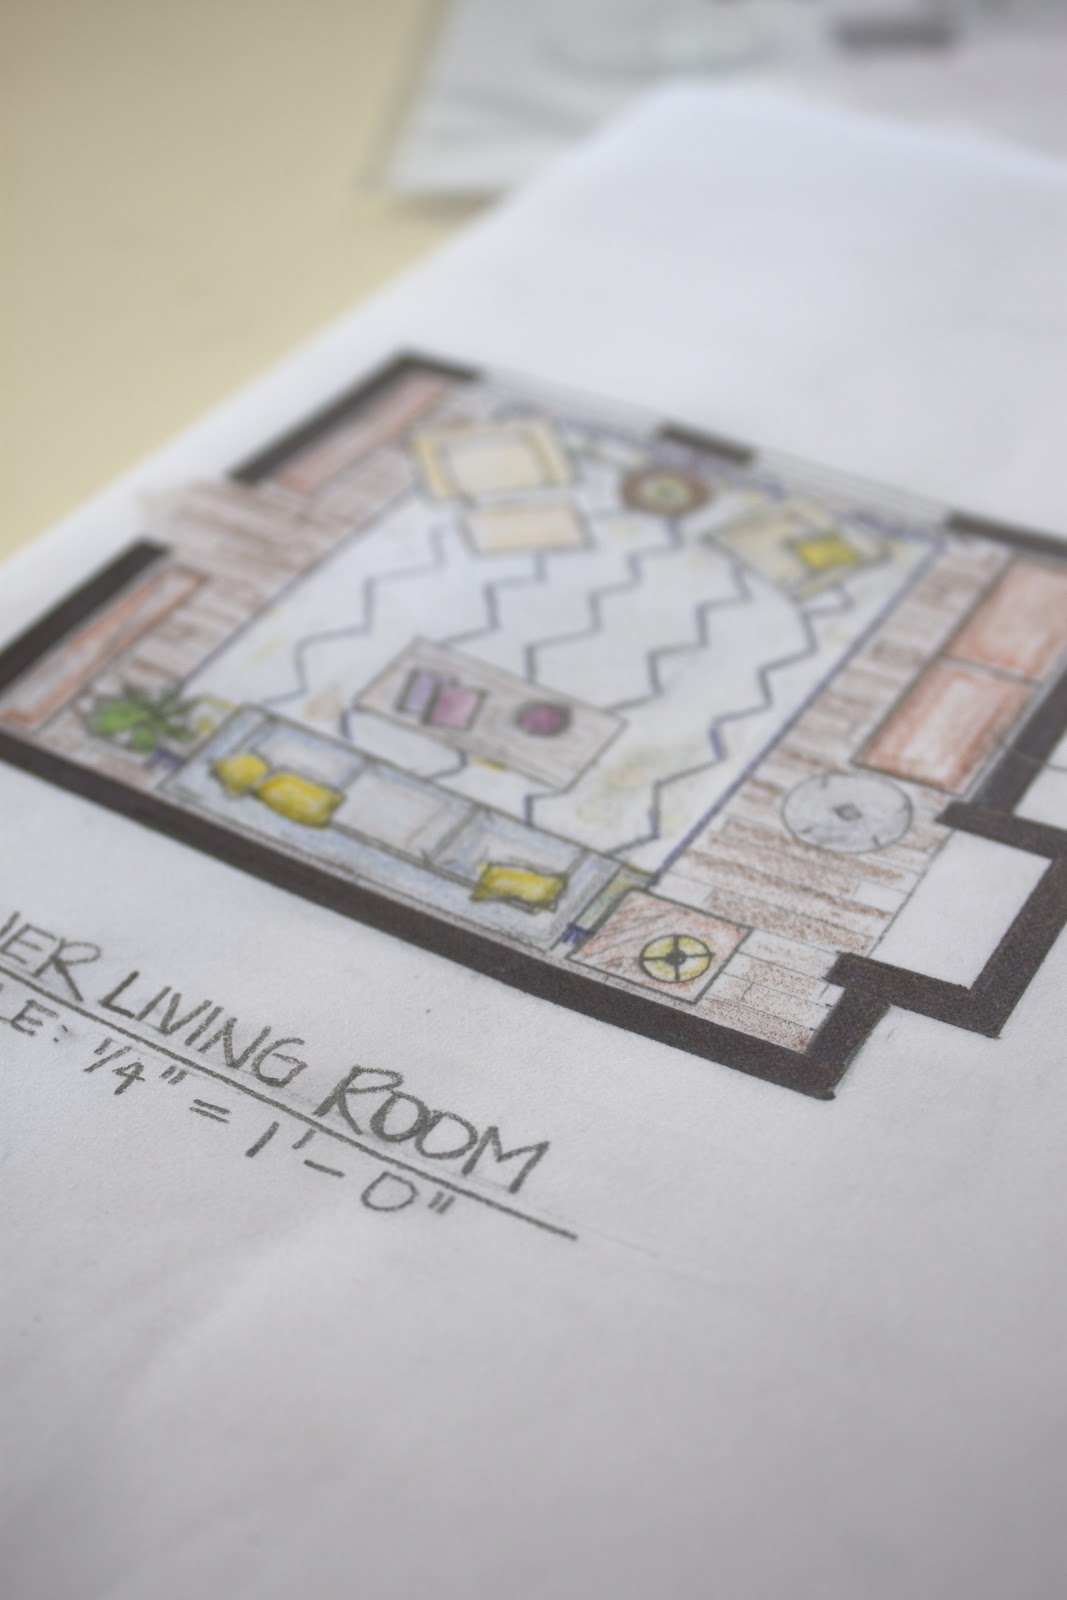 On My Desk: Furniture Plan Reveal